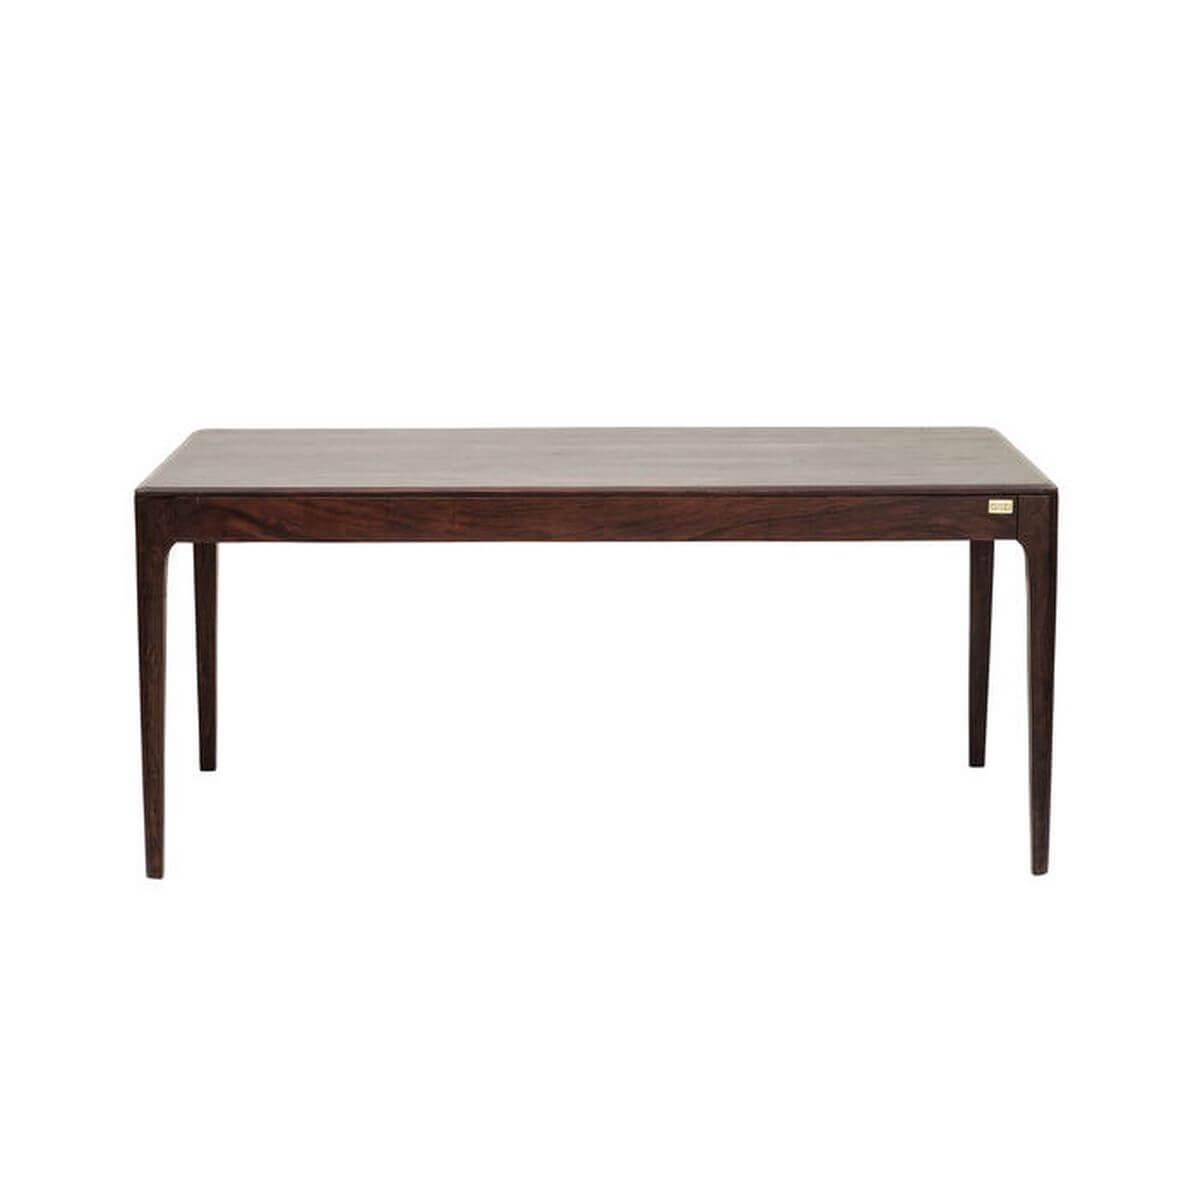 Table Brooklyn Walnut Kare Design 160x80cm